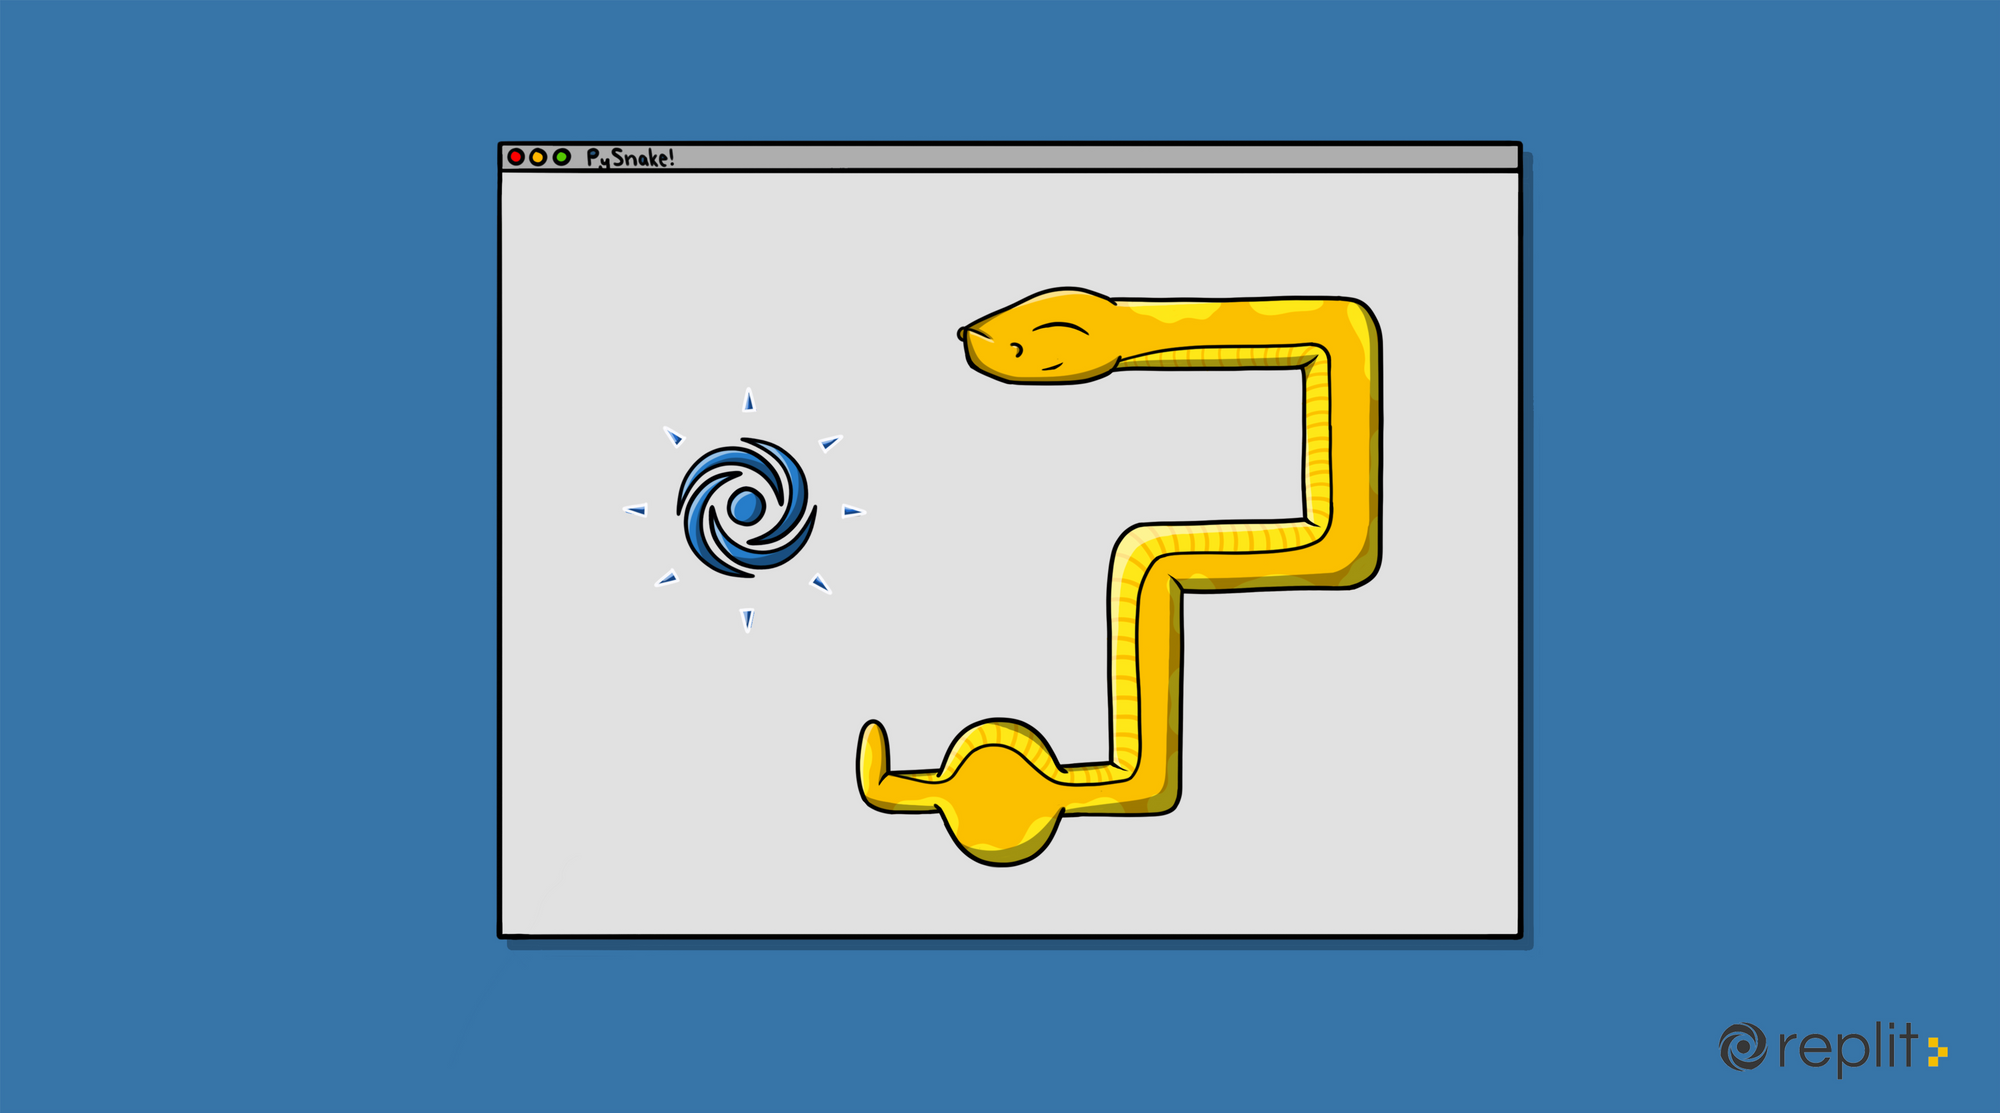 Build the Snake Game with PyGame